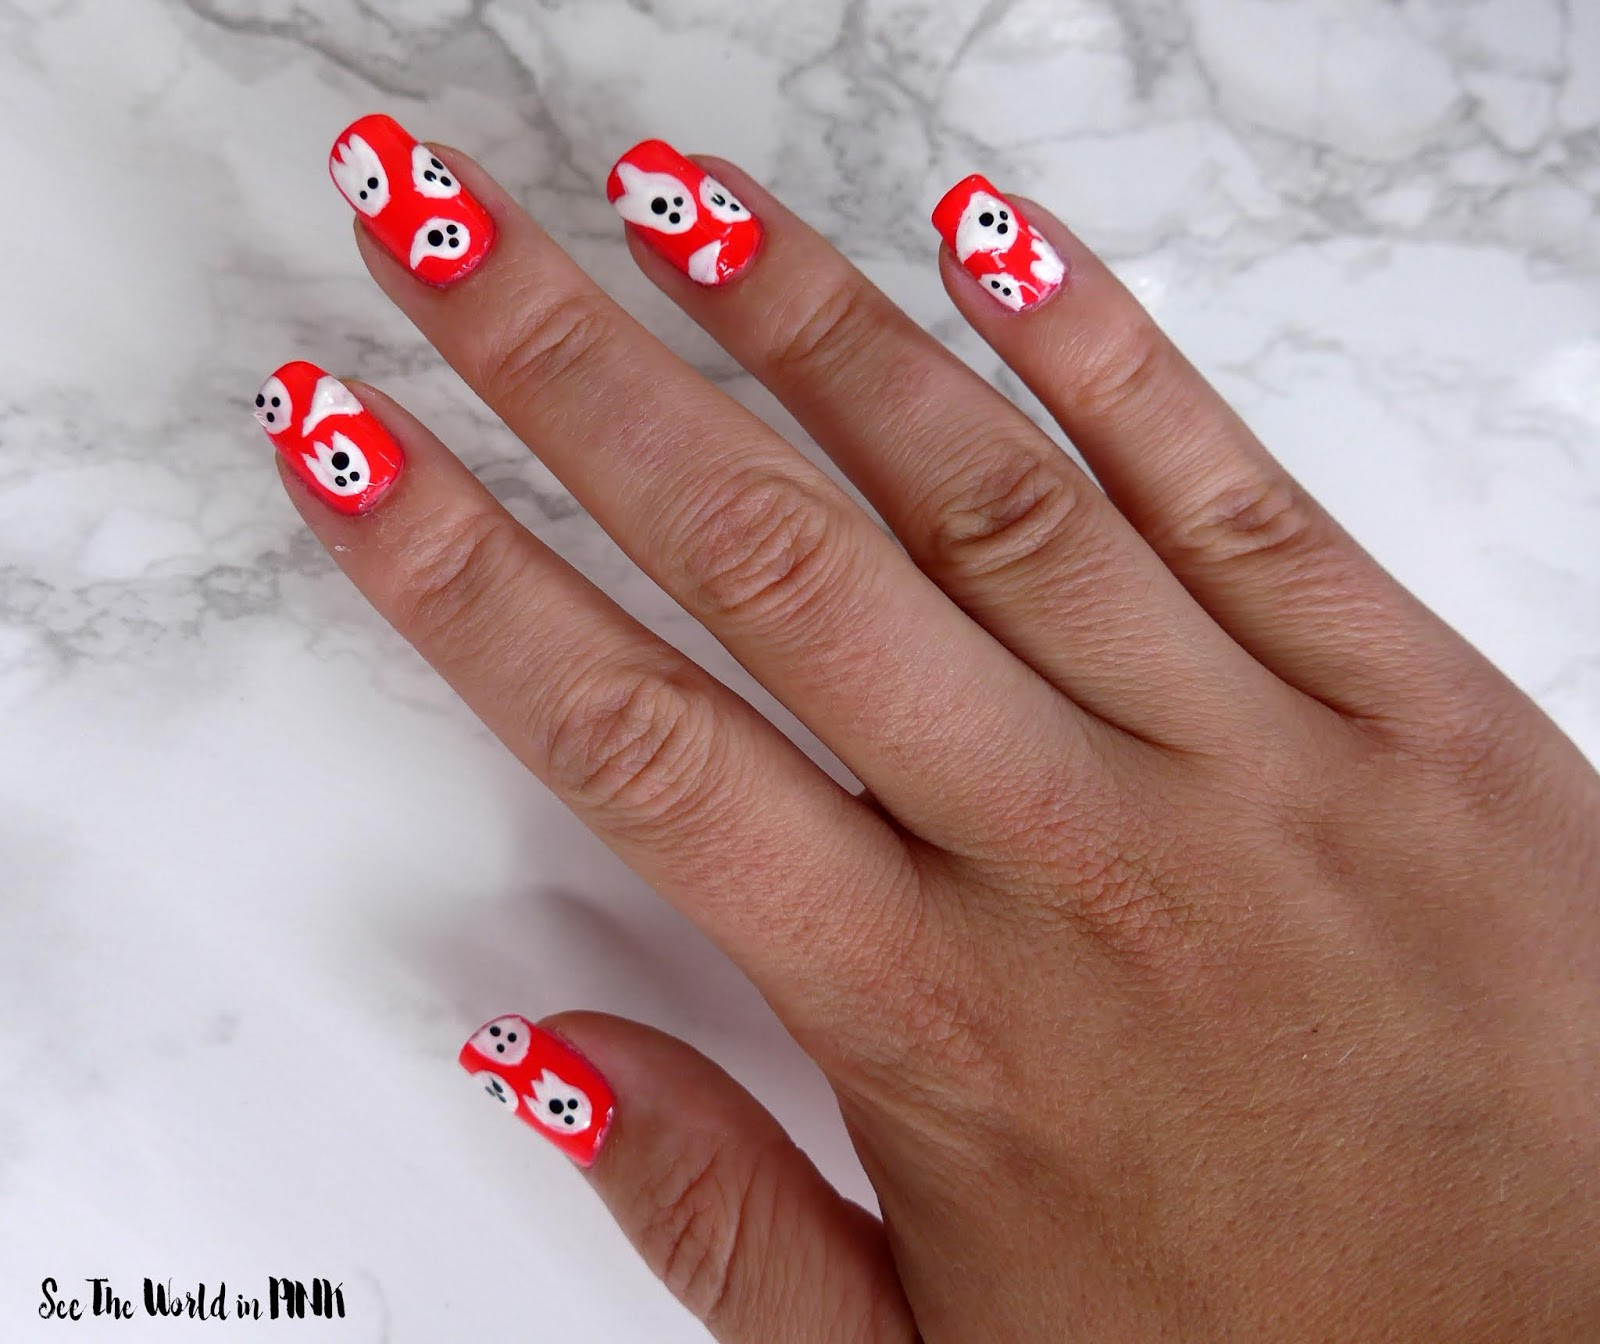 Manicure Monday - Halloween Ghosts Nail Art!